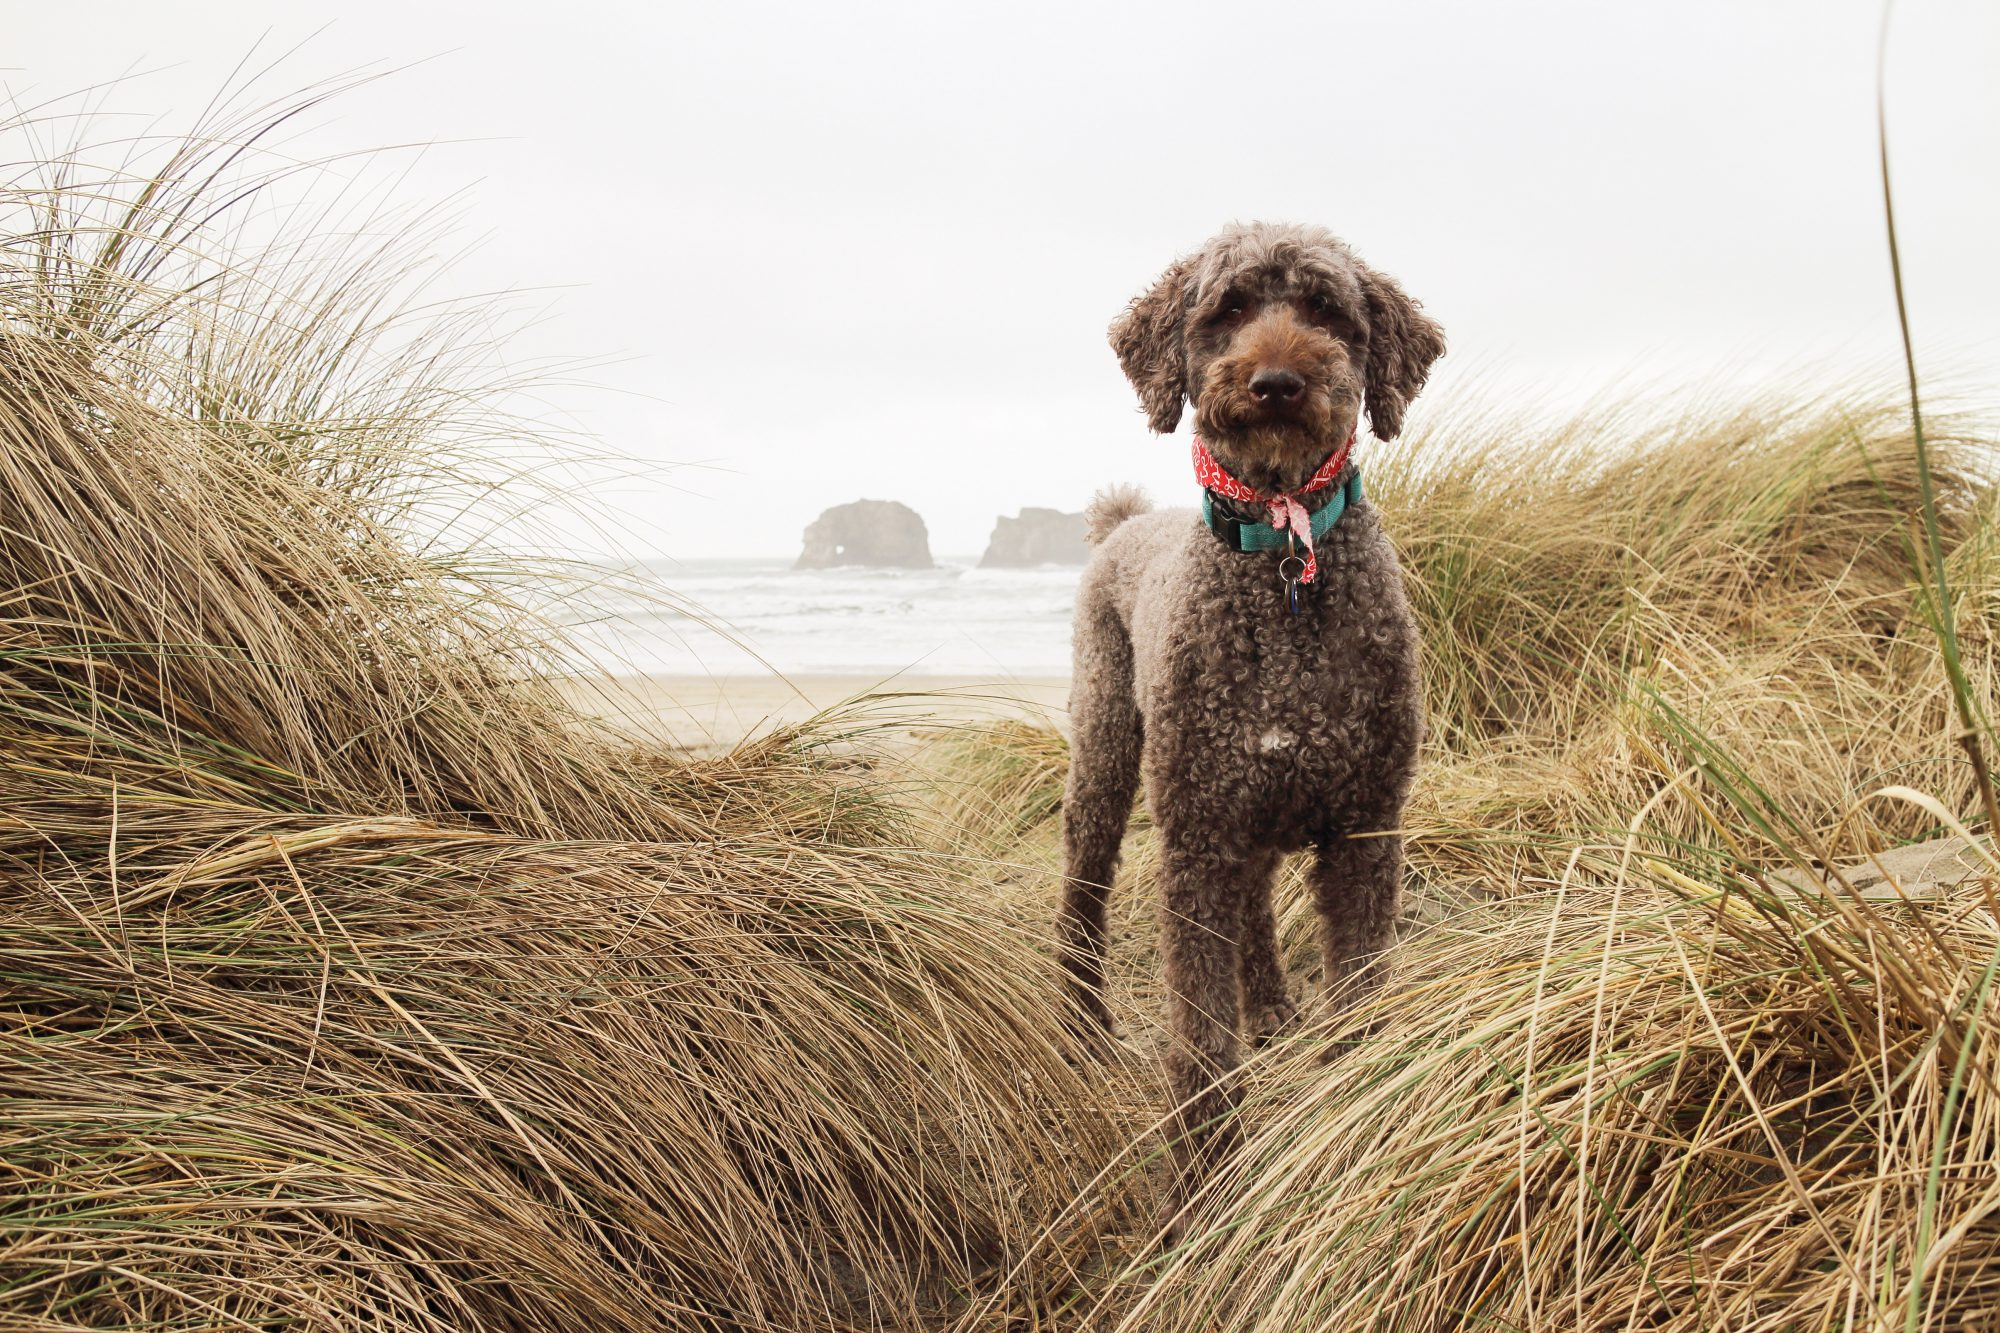 poodle in tall grass at beach